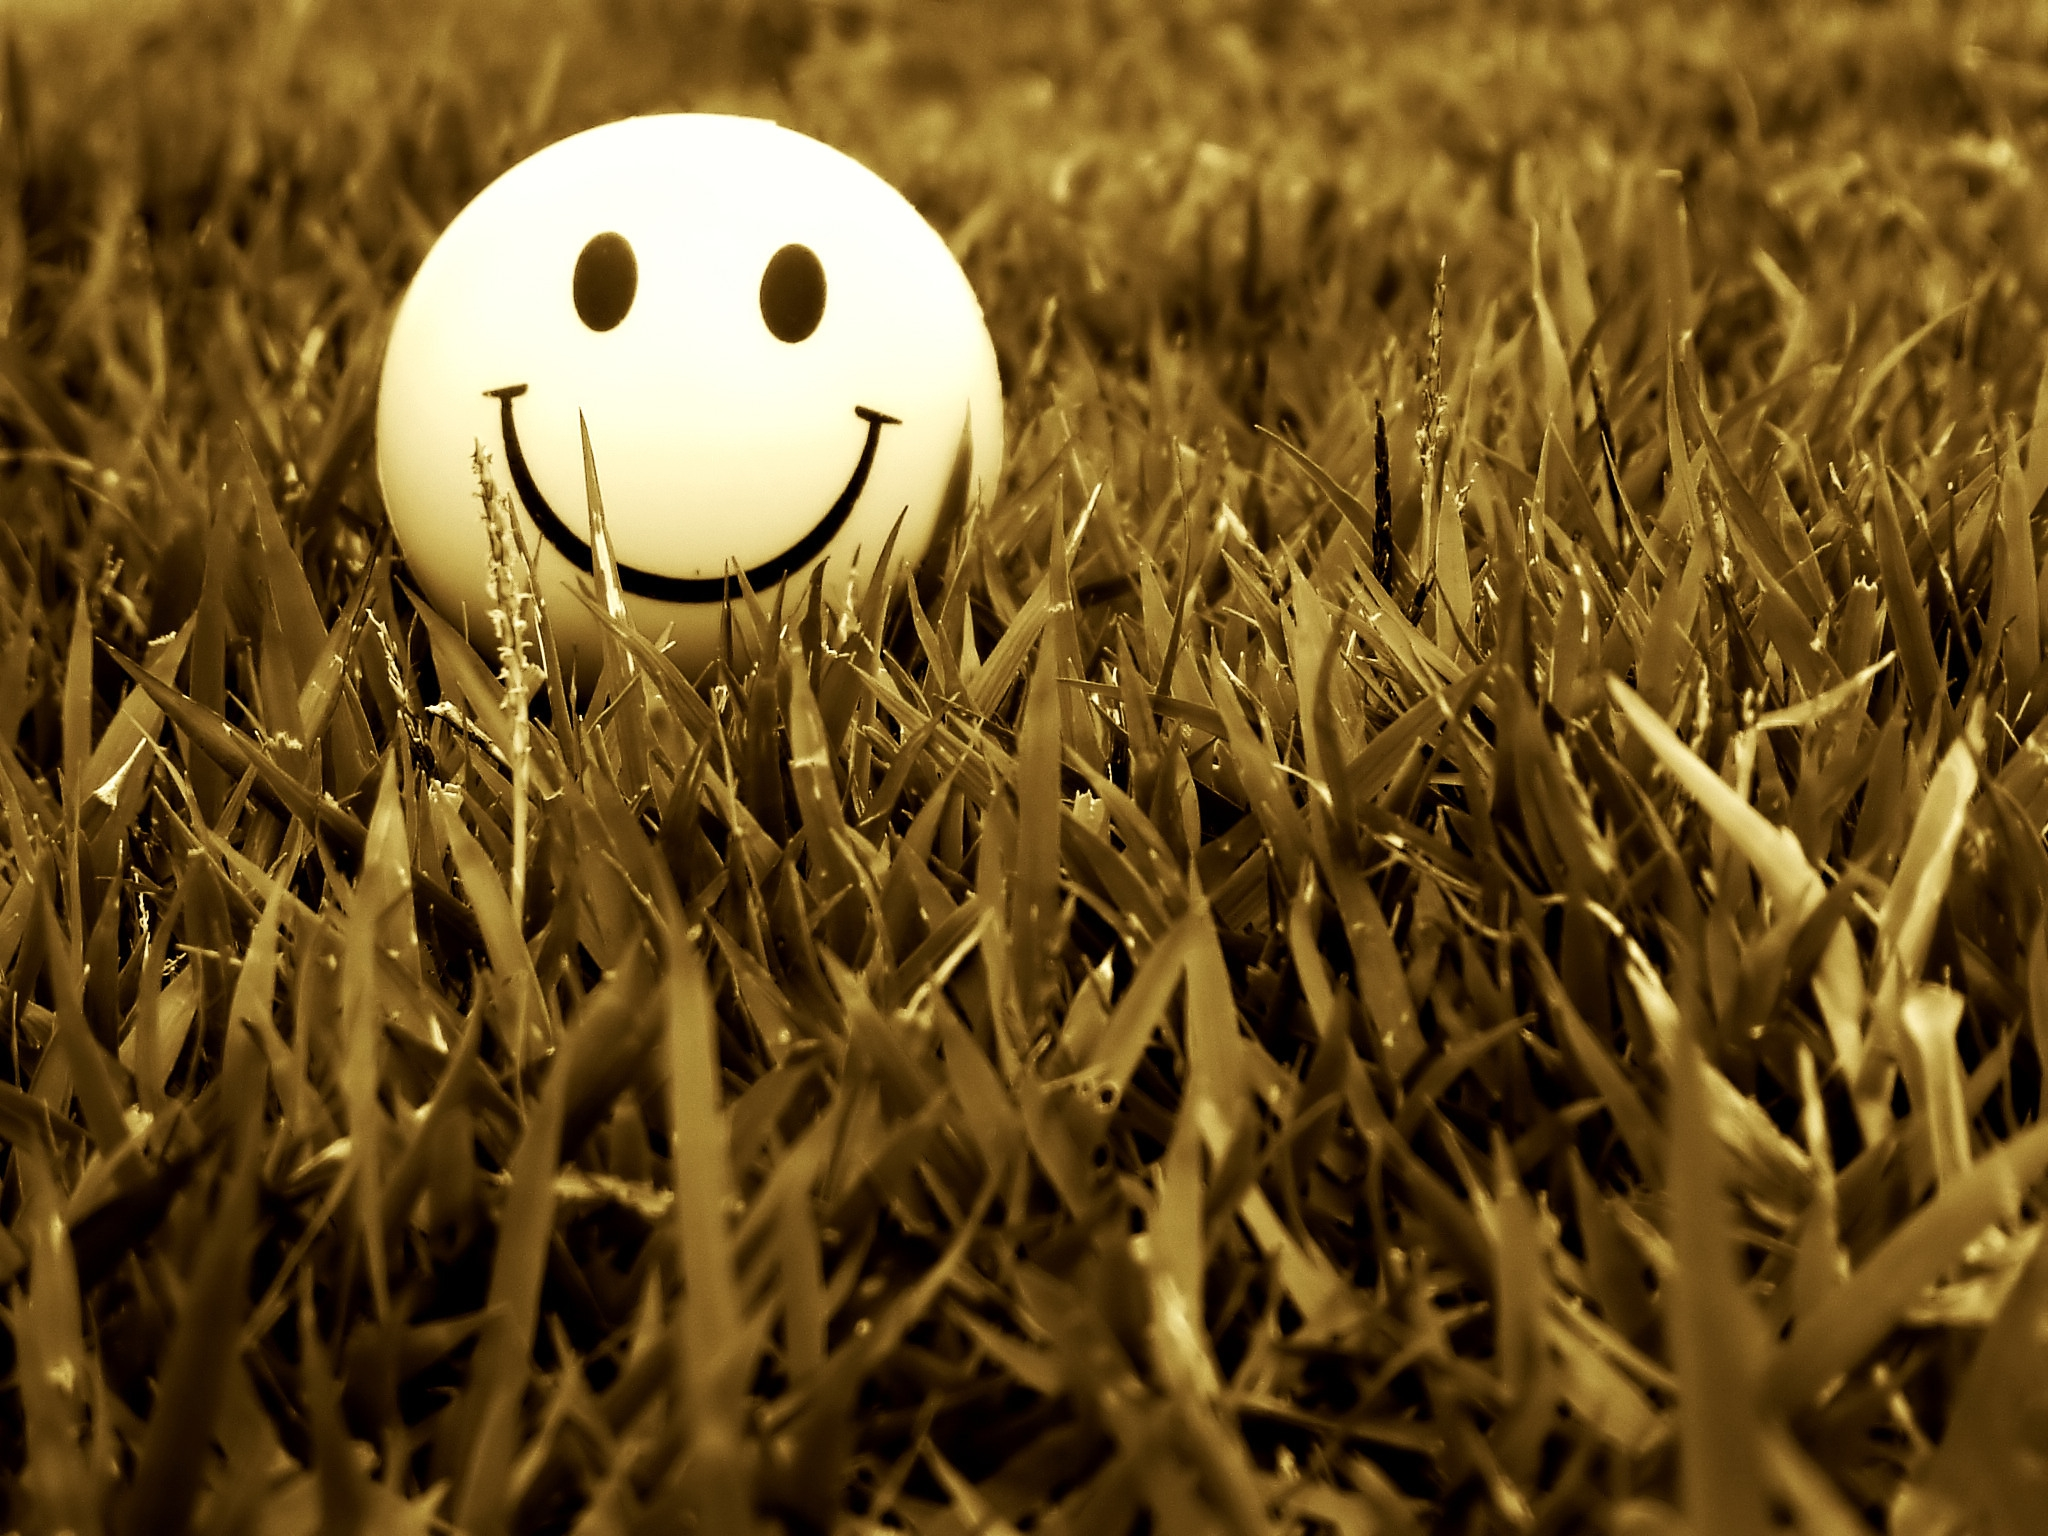 145393 Screensavers and Wallpapers Smile for phone. Download Grass, Miscellanea, Miscellaneous, Smile, Mood pictures for free